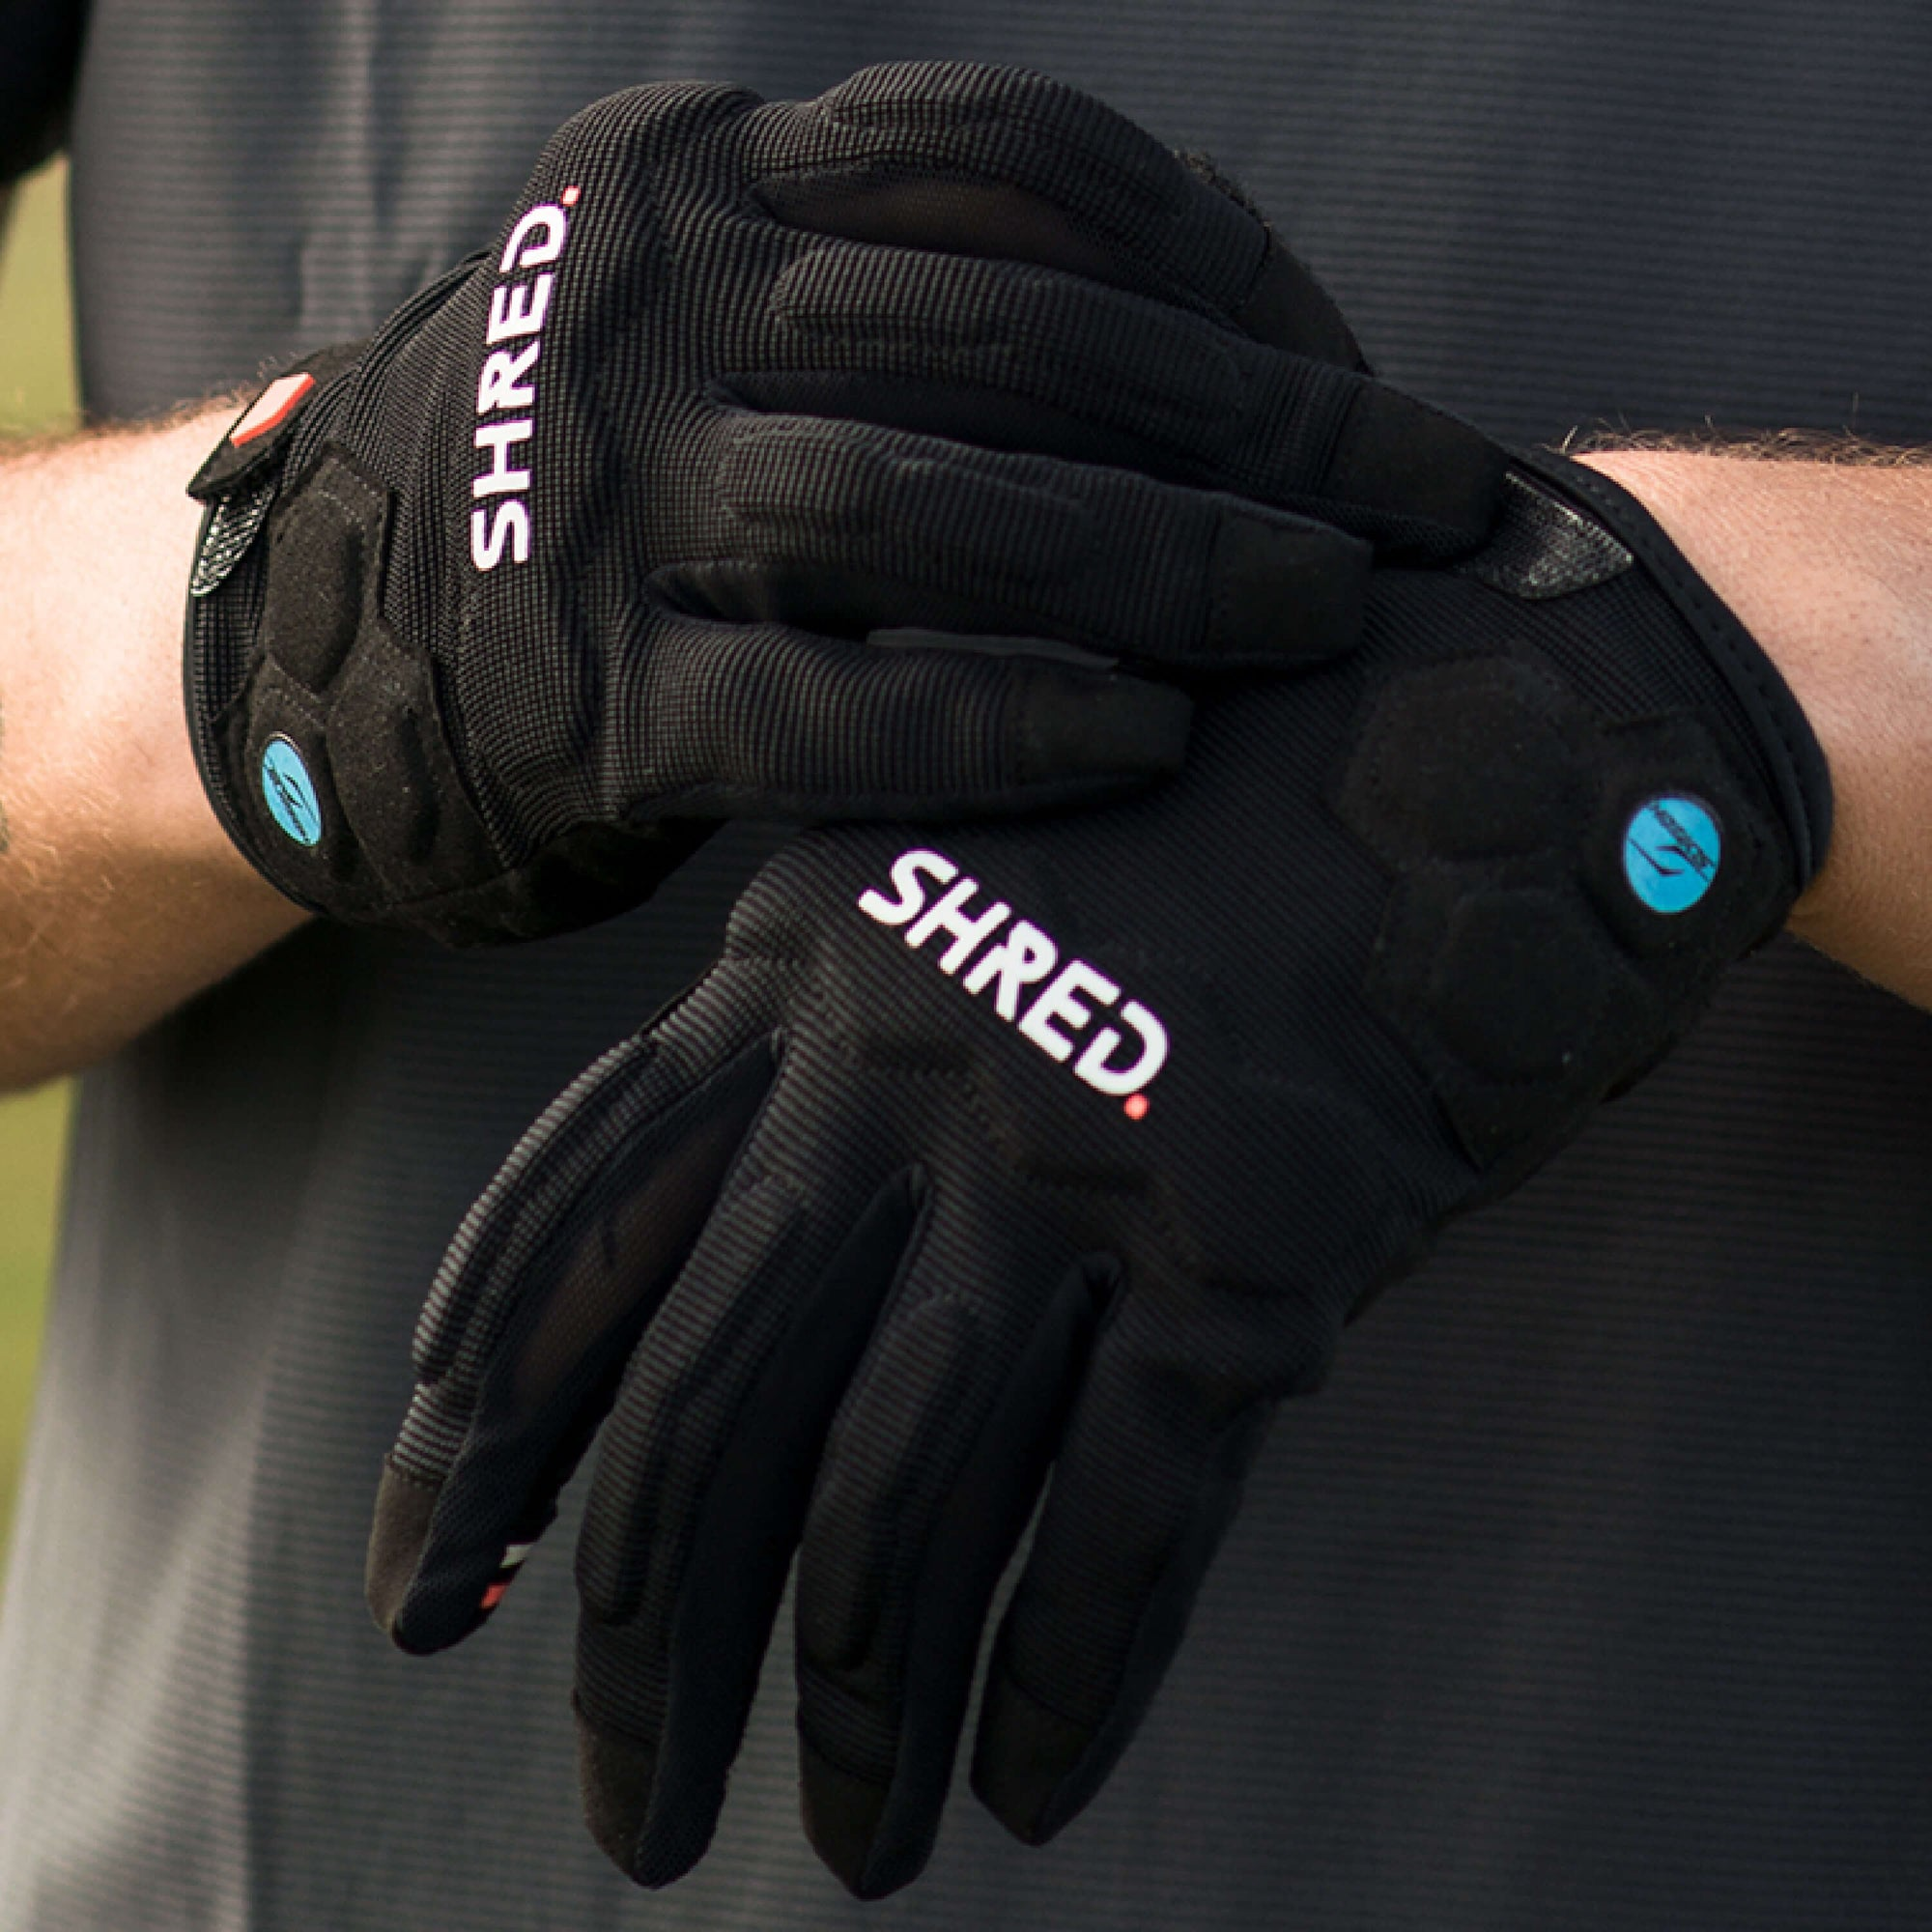 Mtb Protective Gloves Trail Black - Protective Gloves